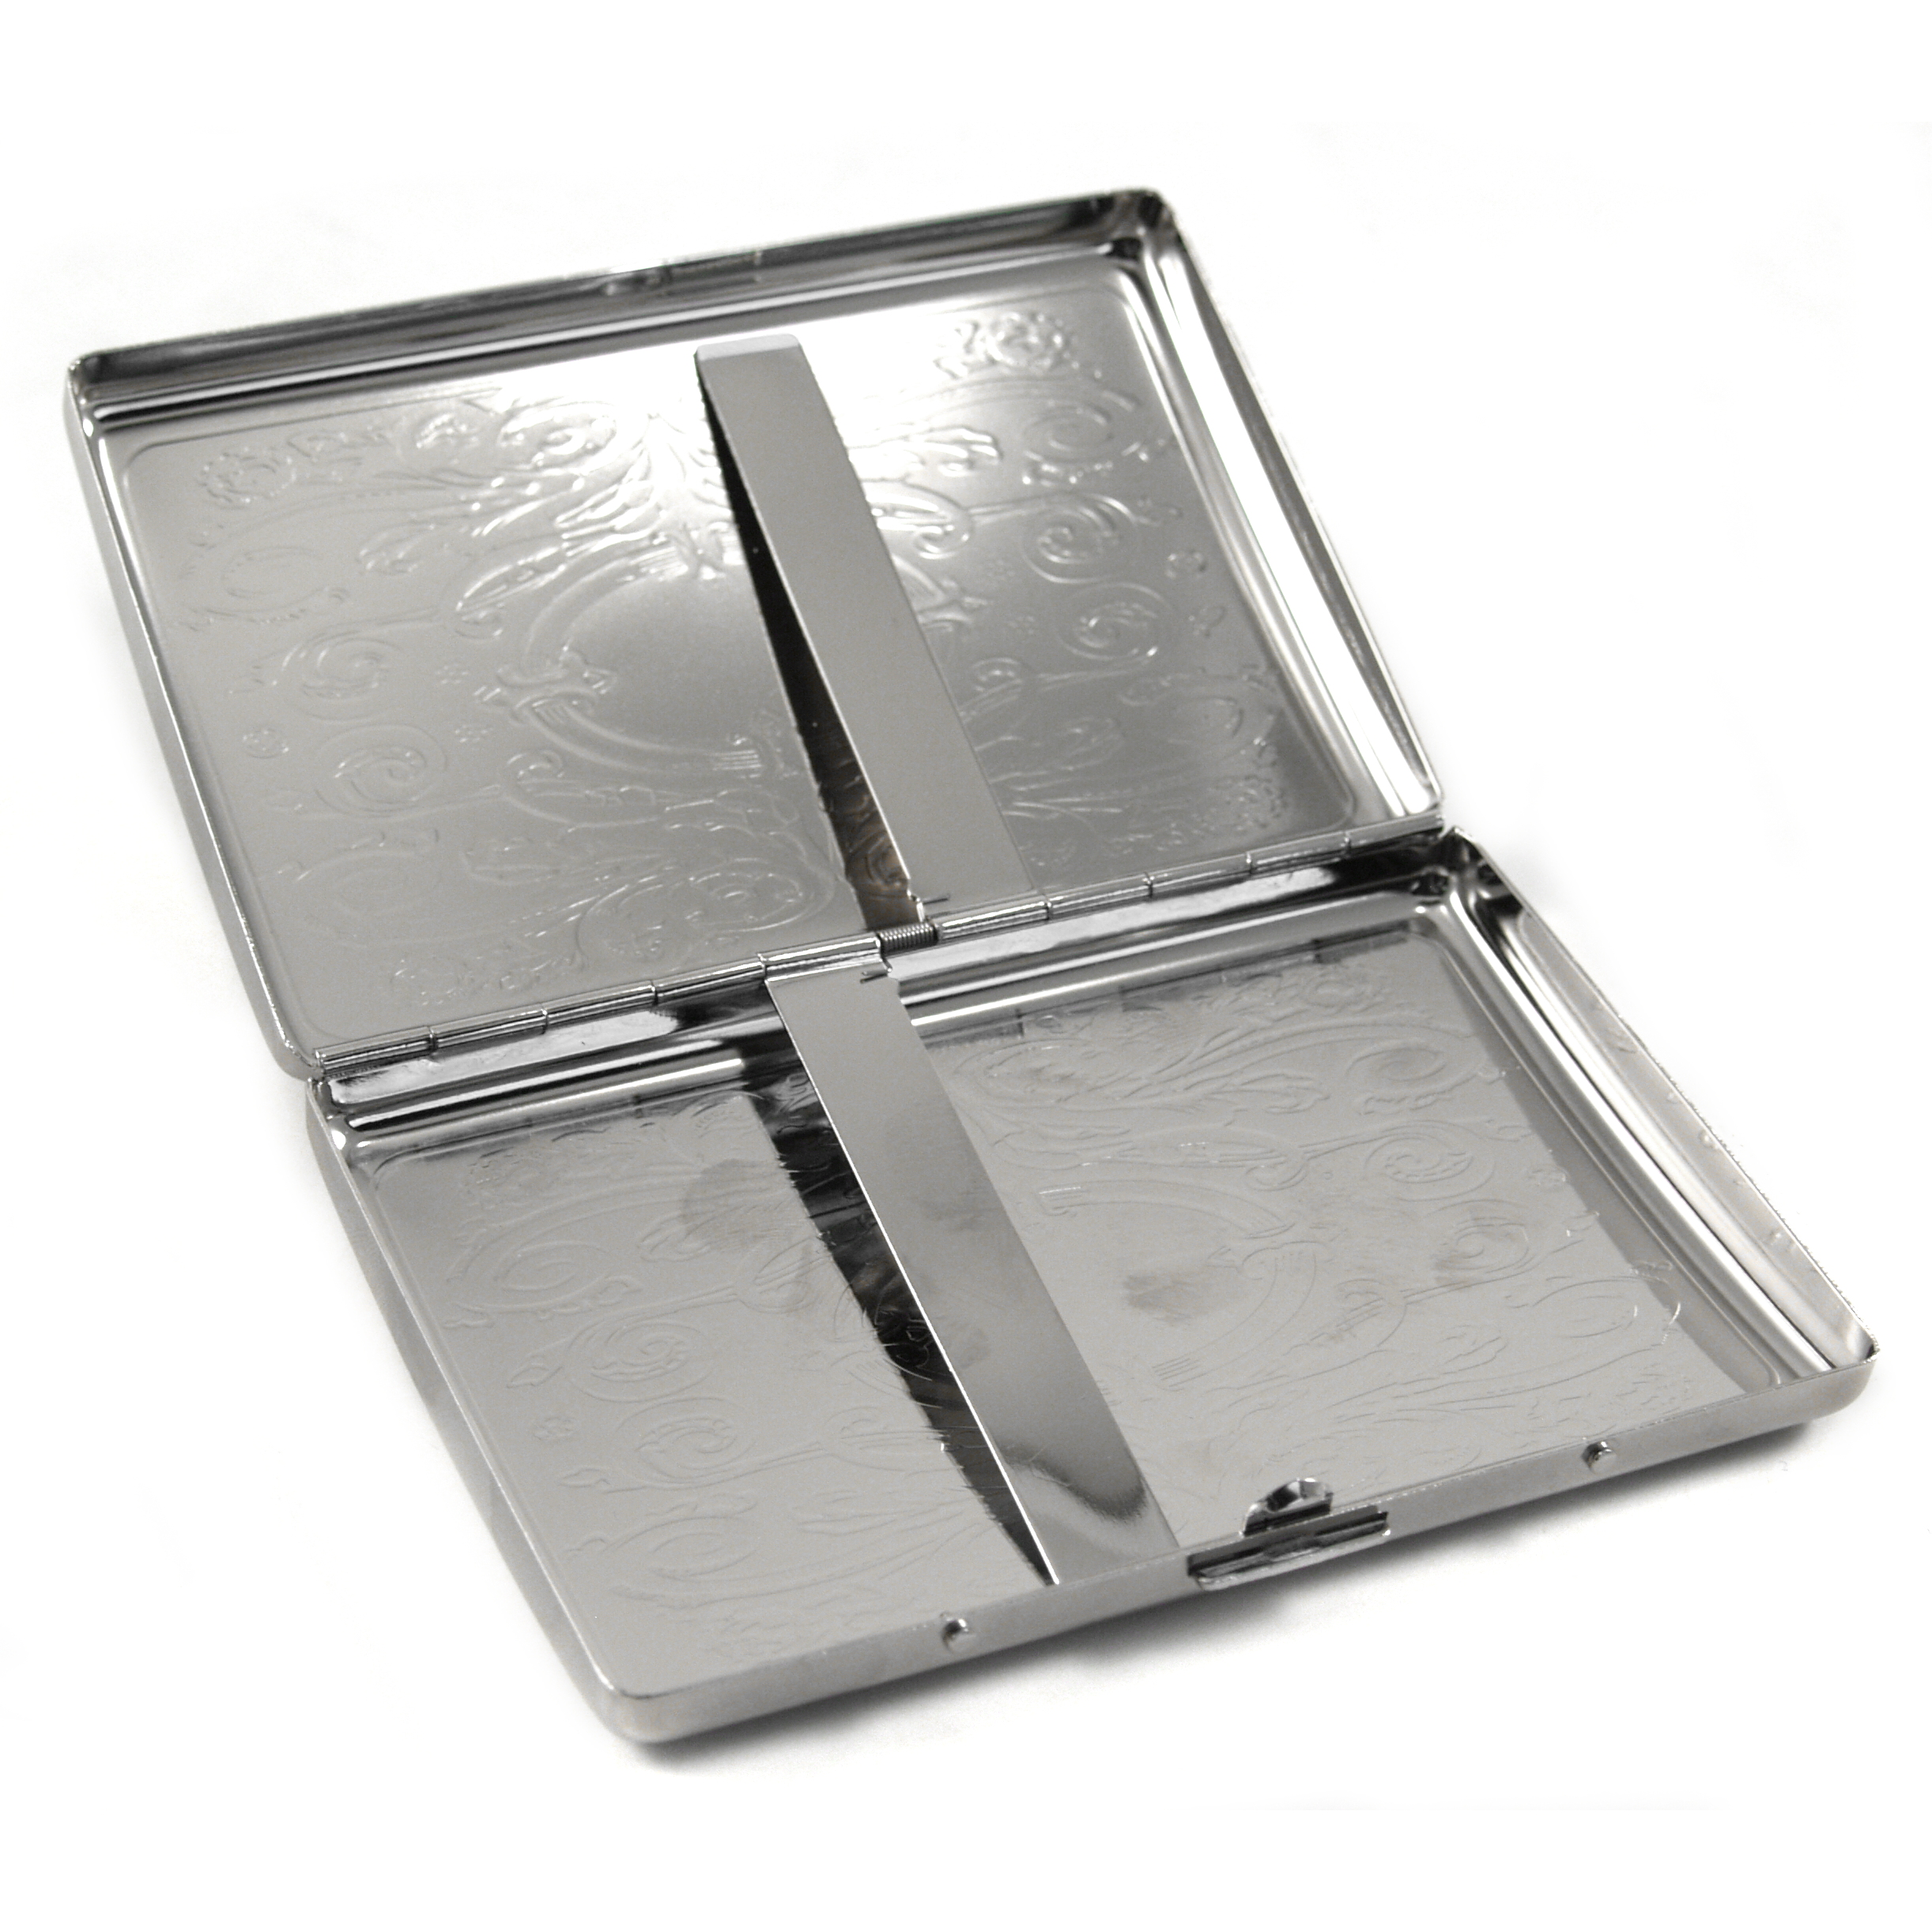 Etched Western Stainless Steel Cigarette Case